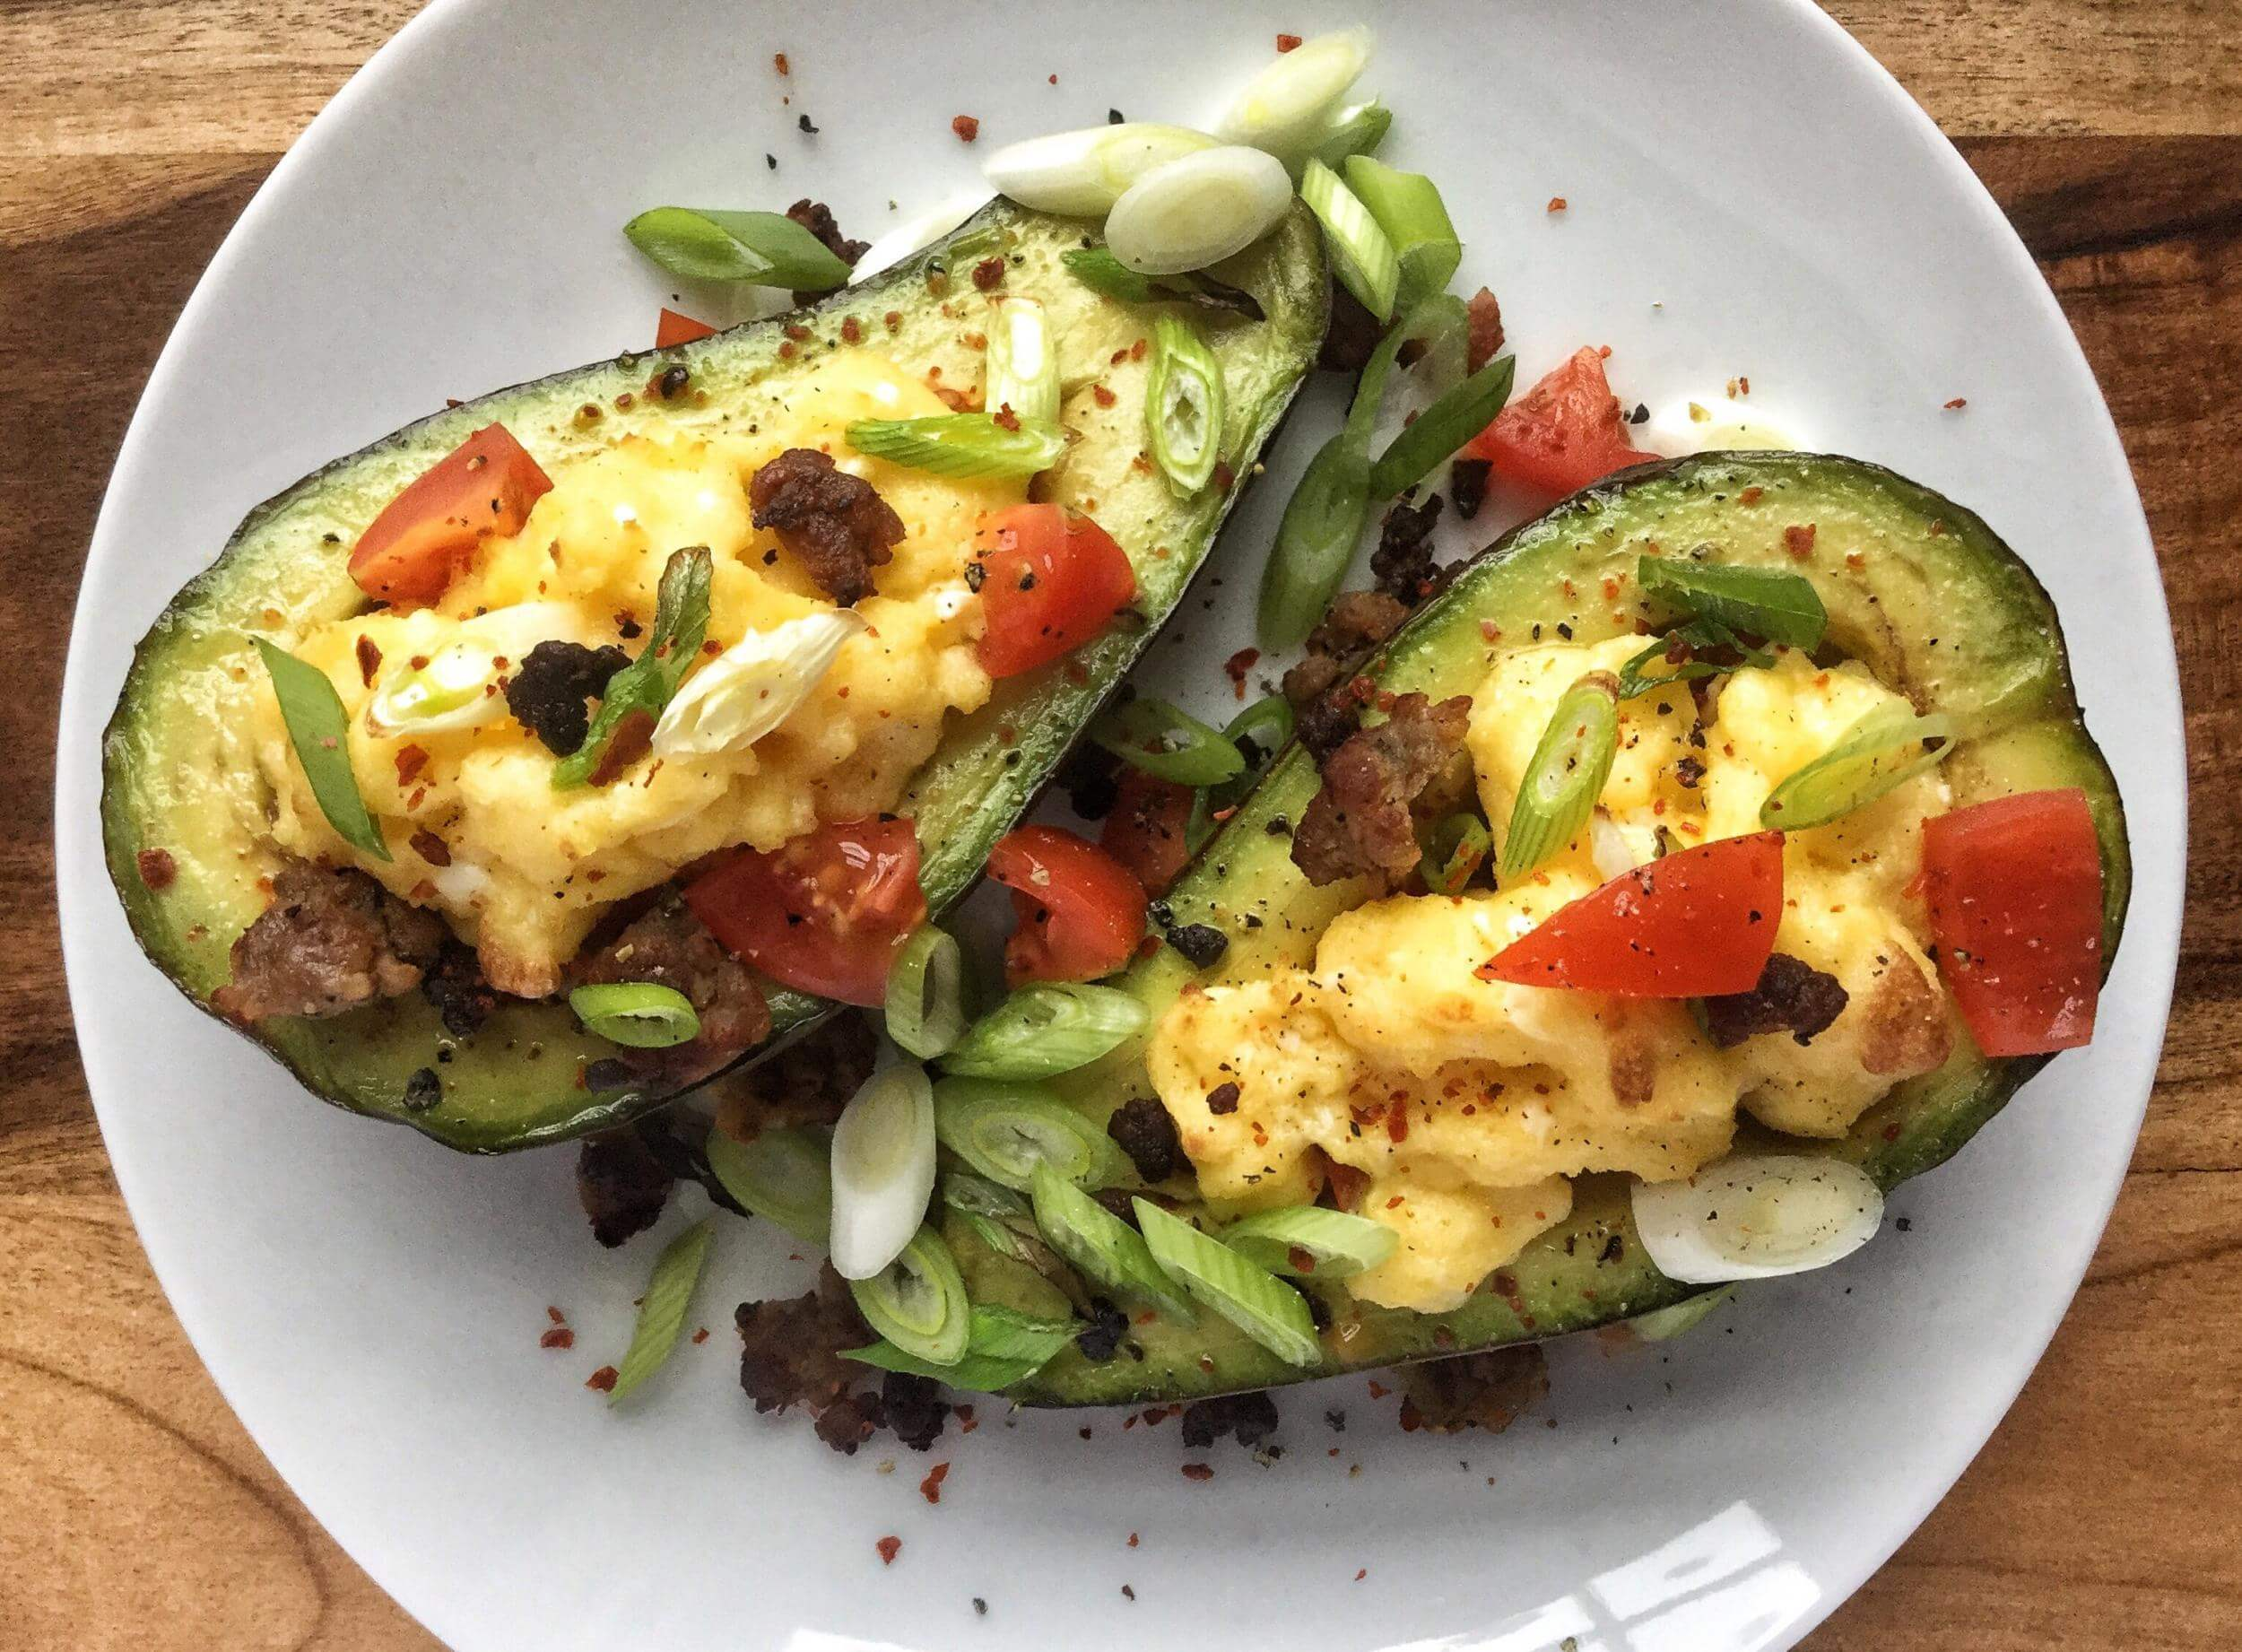 baked-avocado-cups-with-sausage-and-egg